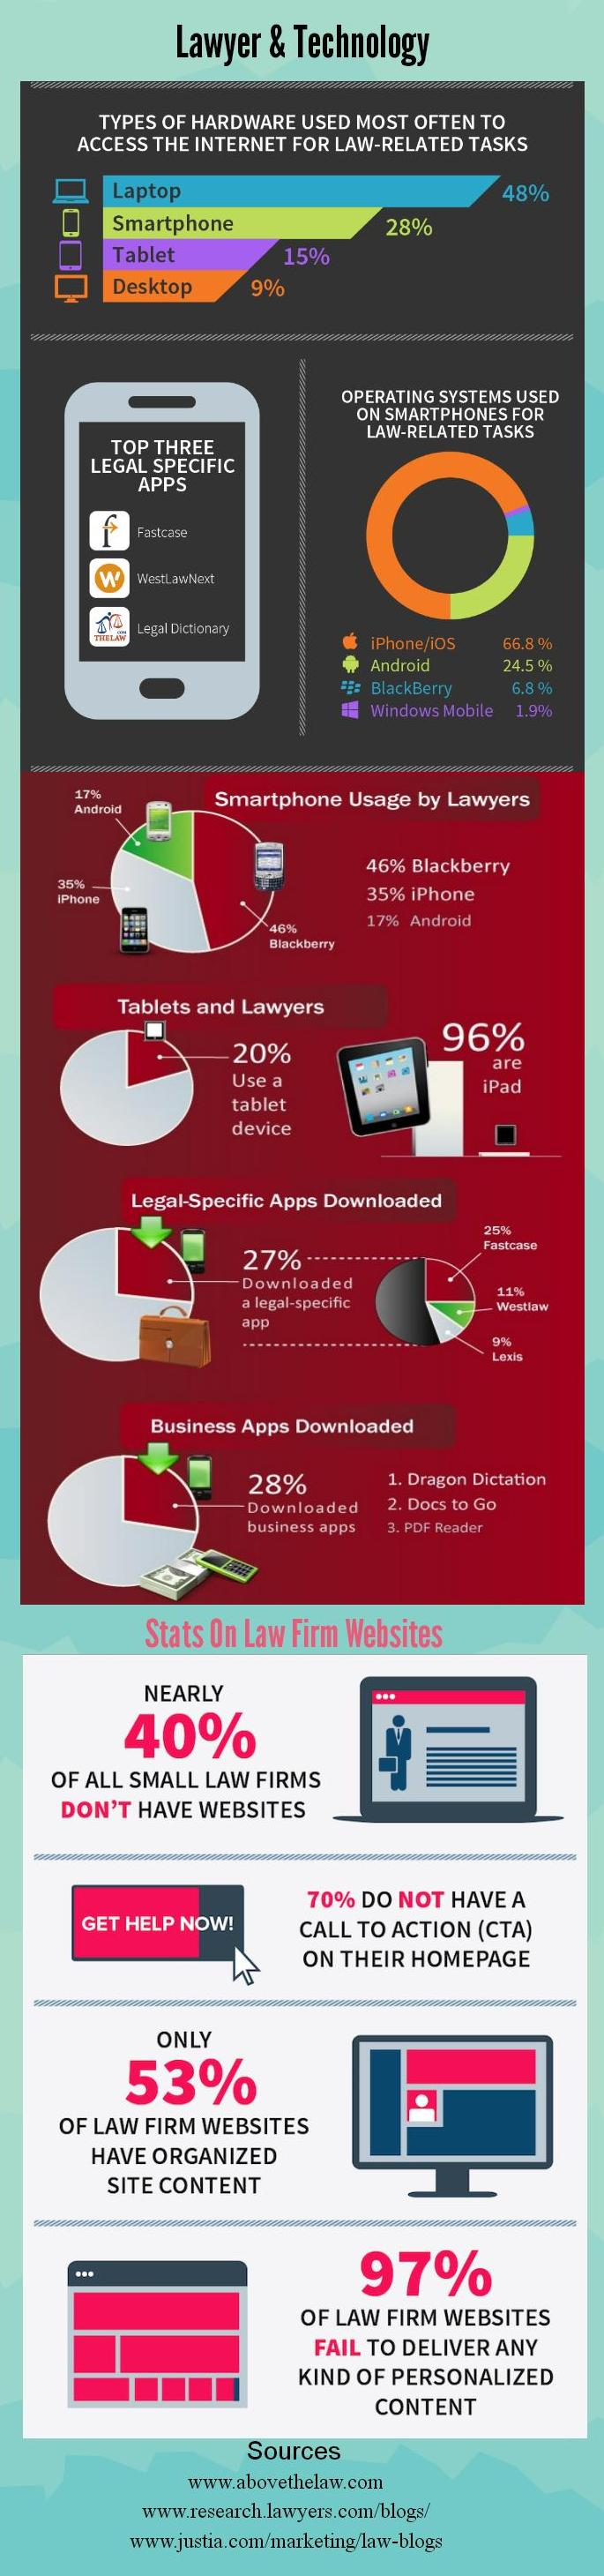 Lawyer & Technology